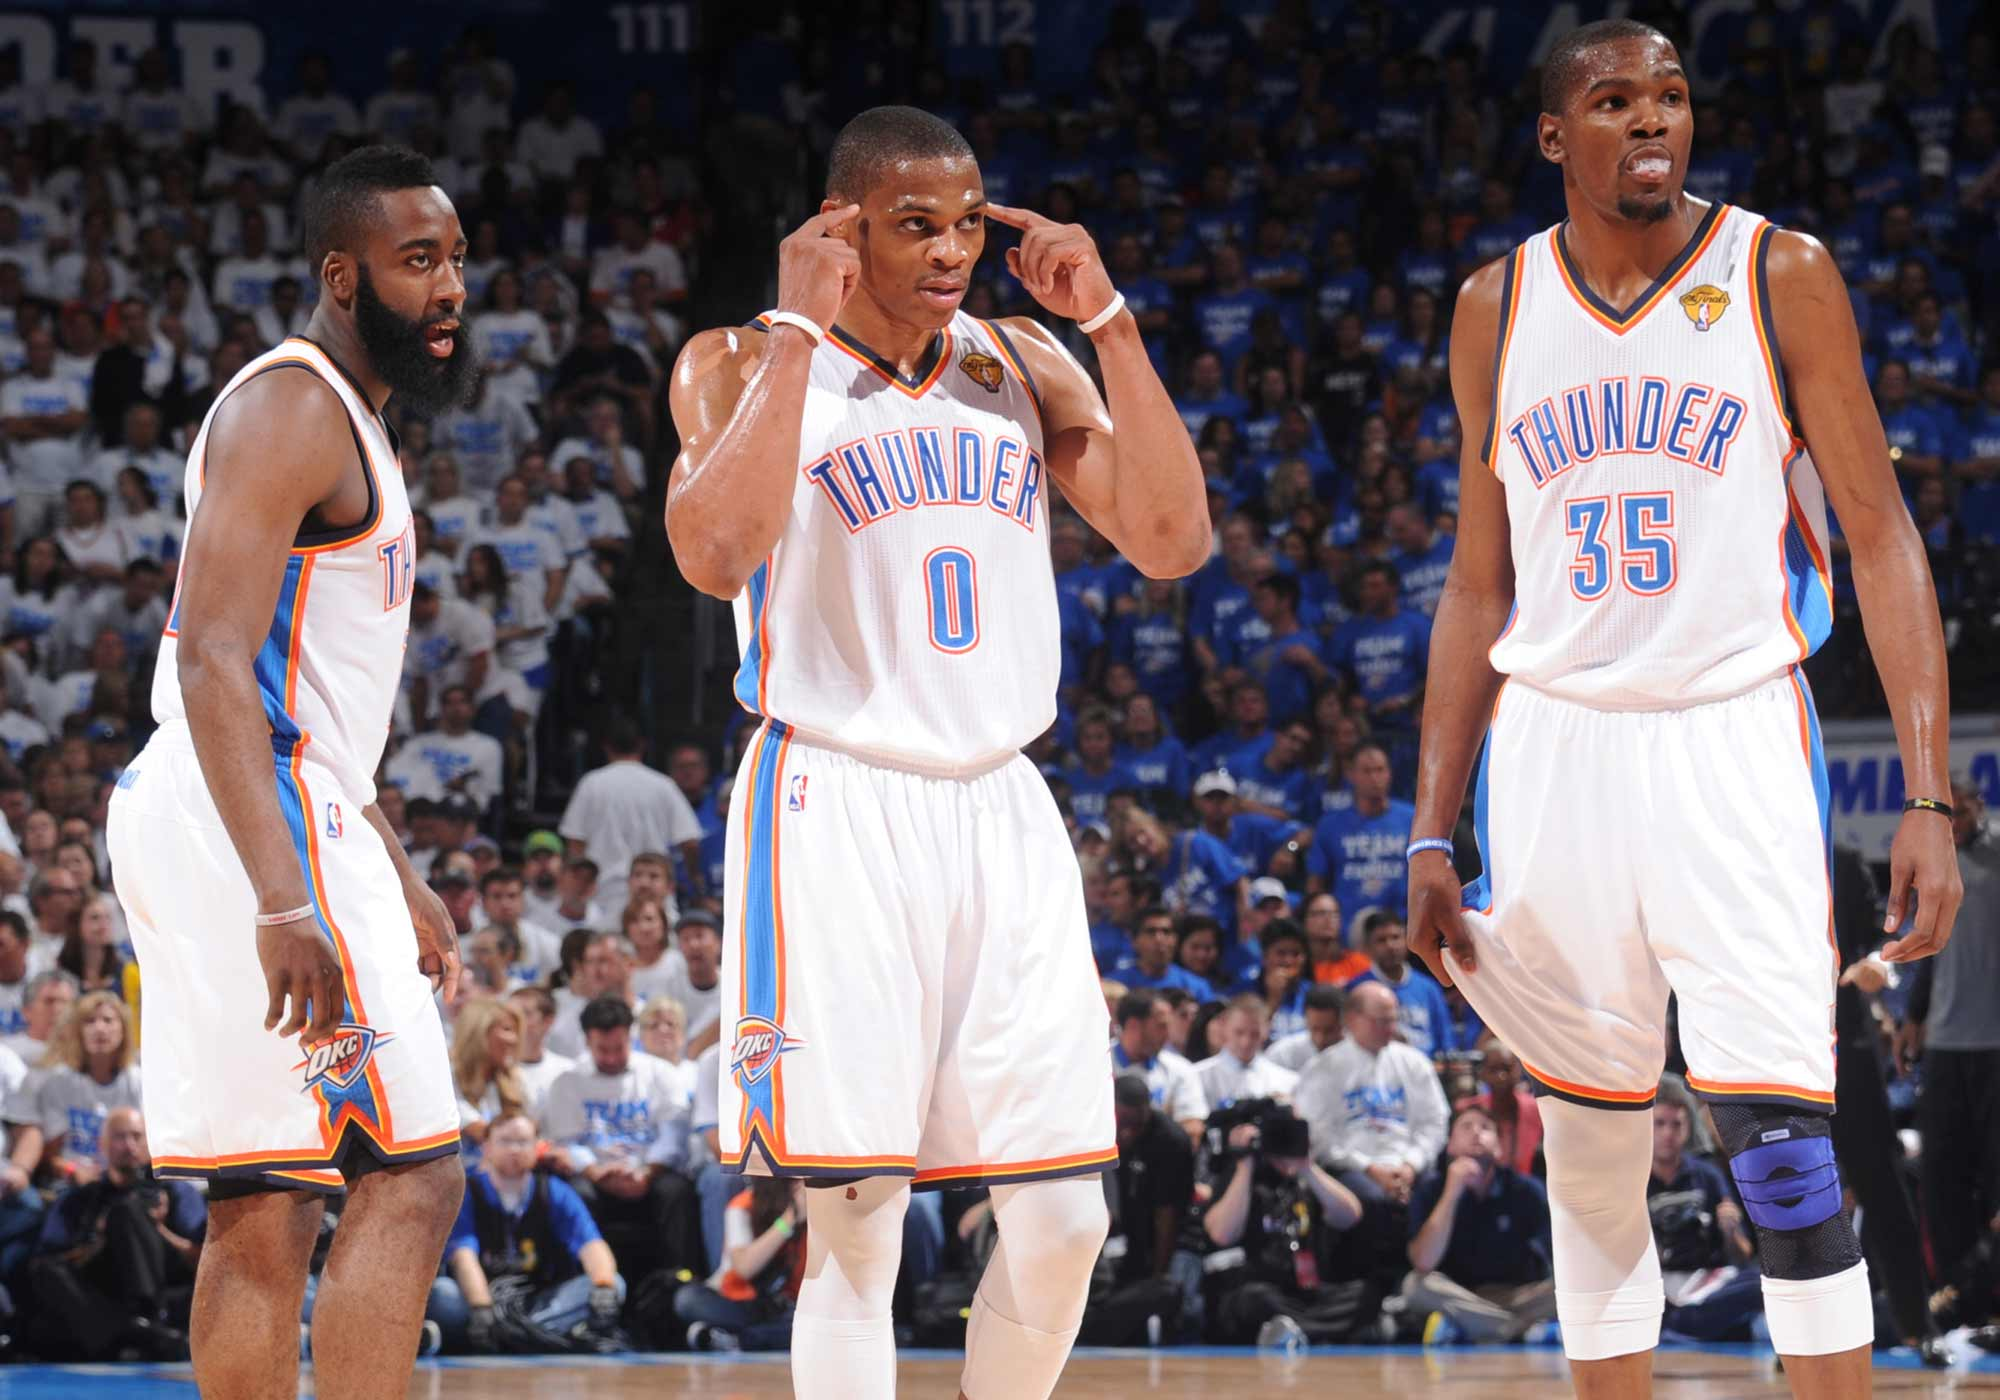 James Harden, Russell Westbrook and Kevin Durant